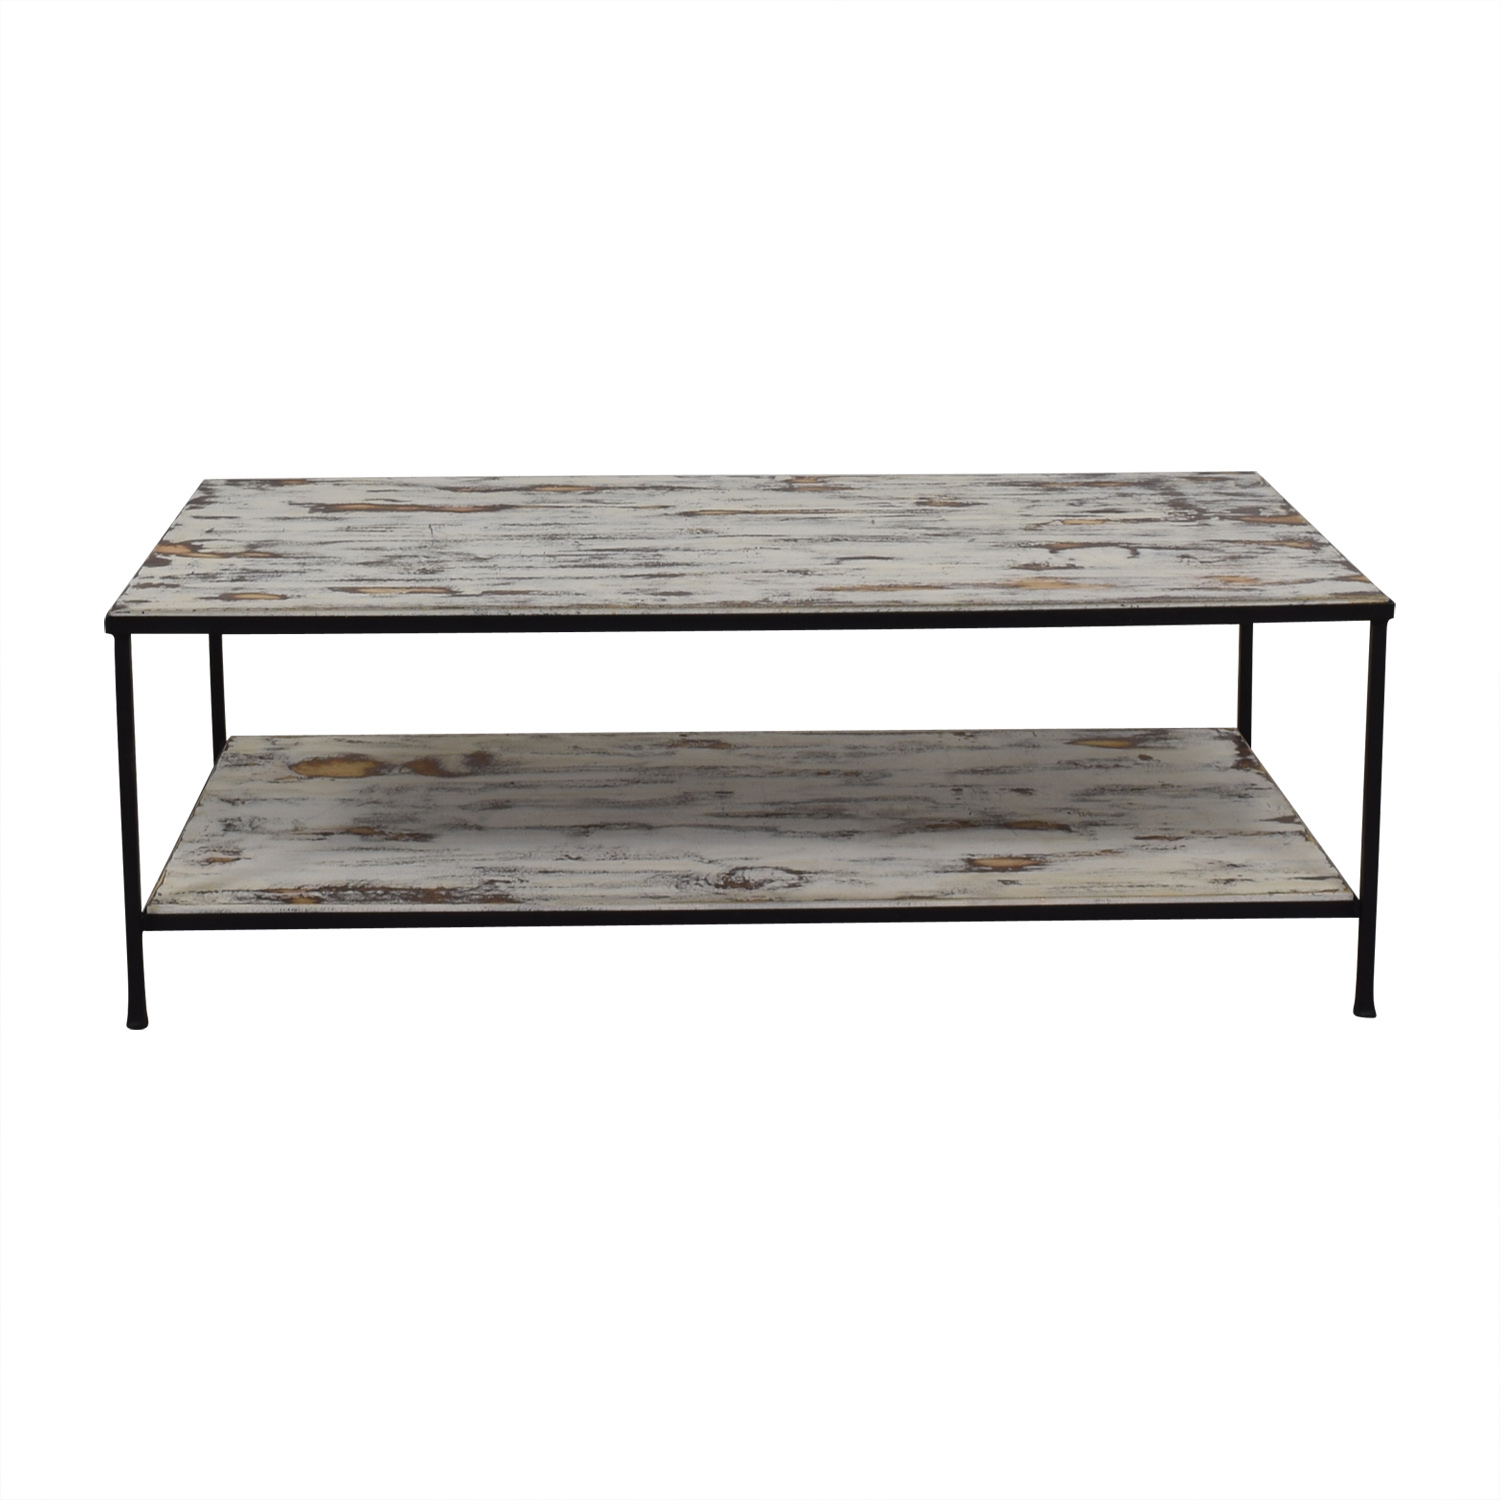 Outstanding 61 Off Rustic Distressed Wood Coffee Table Tables Dailytribune Chair Design For Home Dailytribuneorg